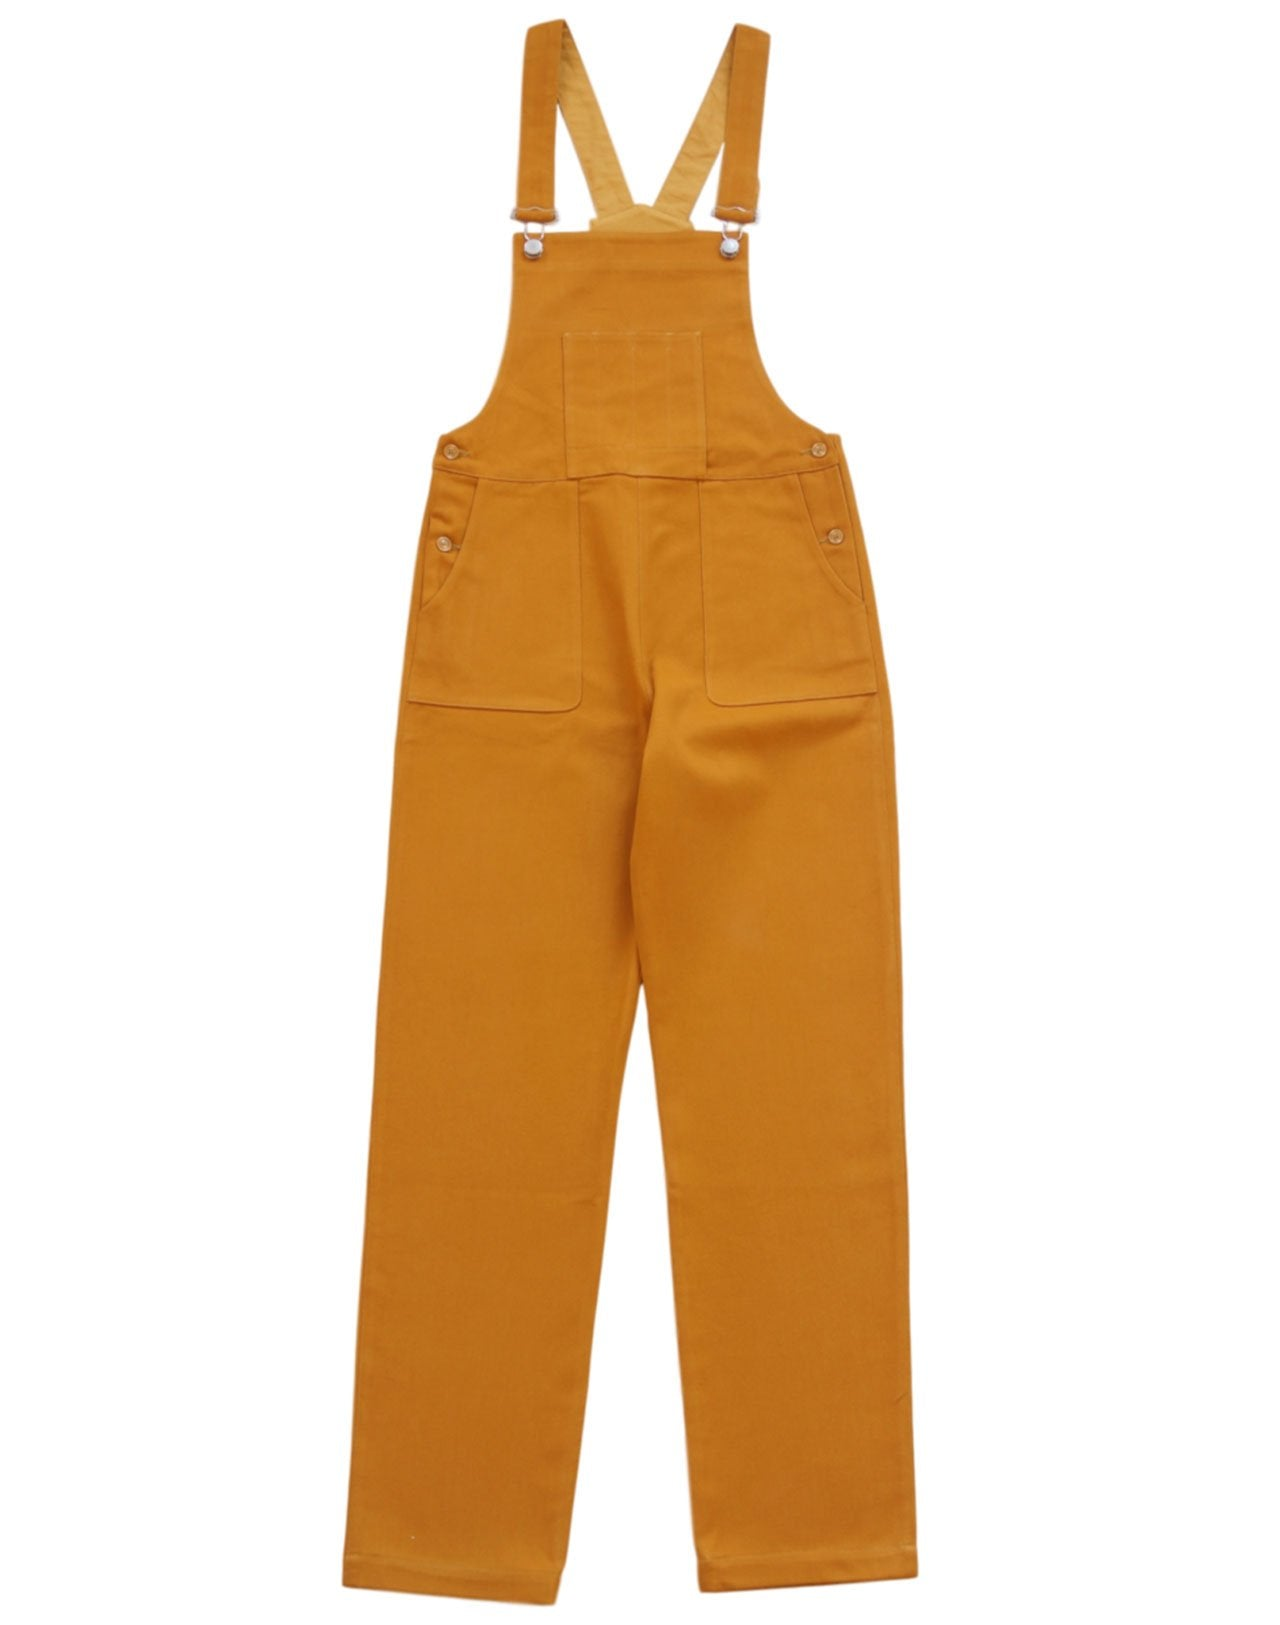 Salopette The Dungaree